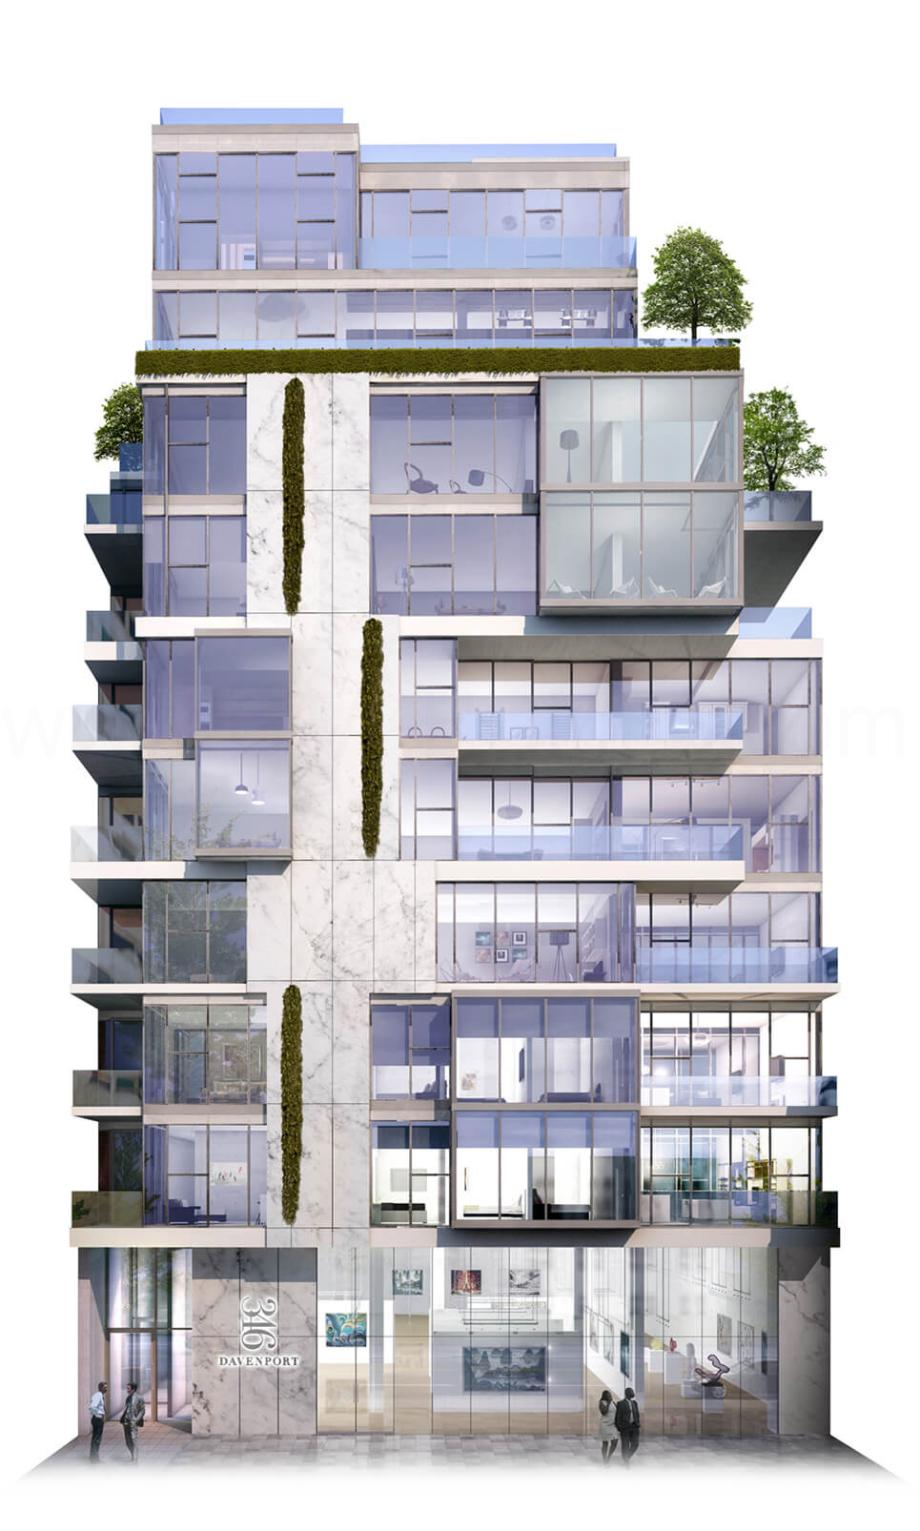 346 Davenport Luxury Condominiums